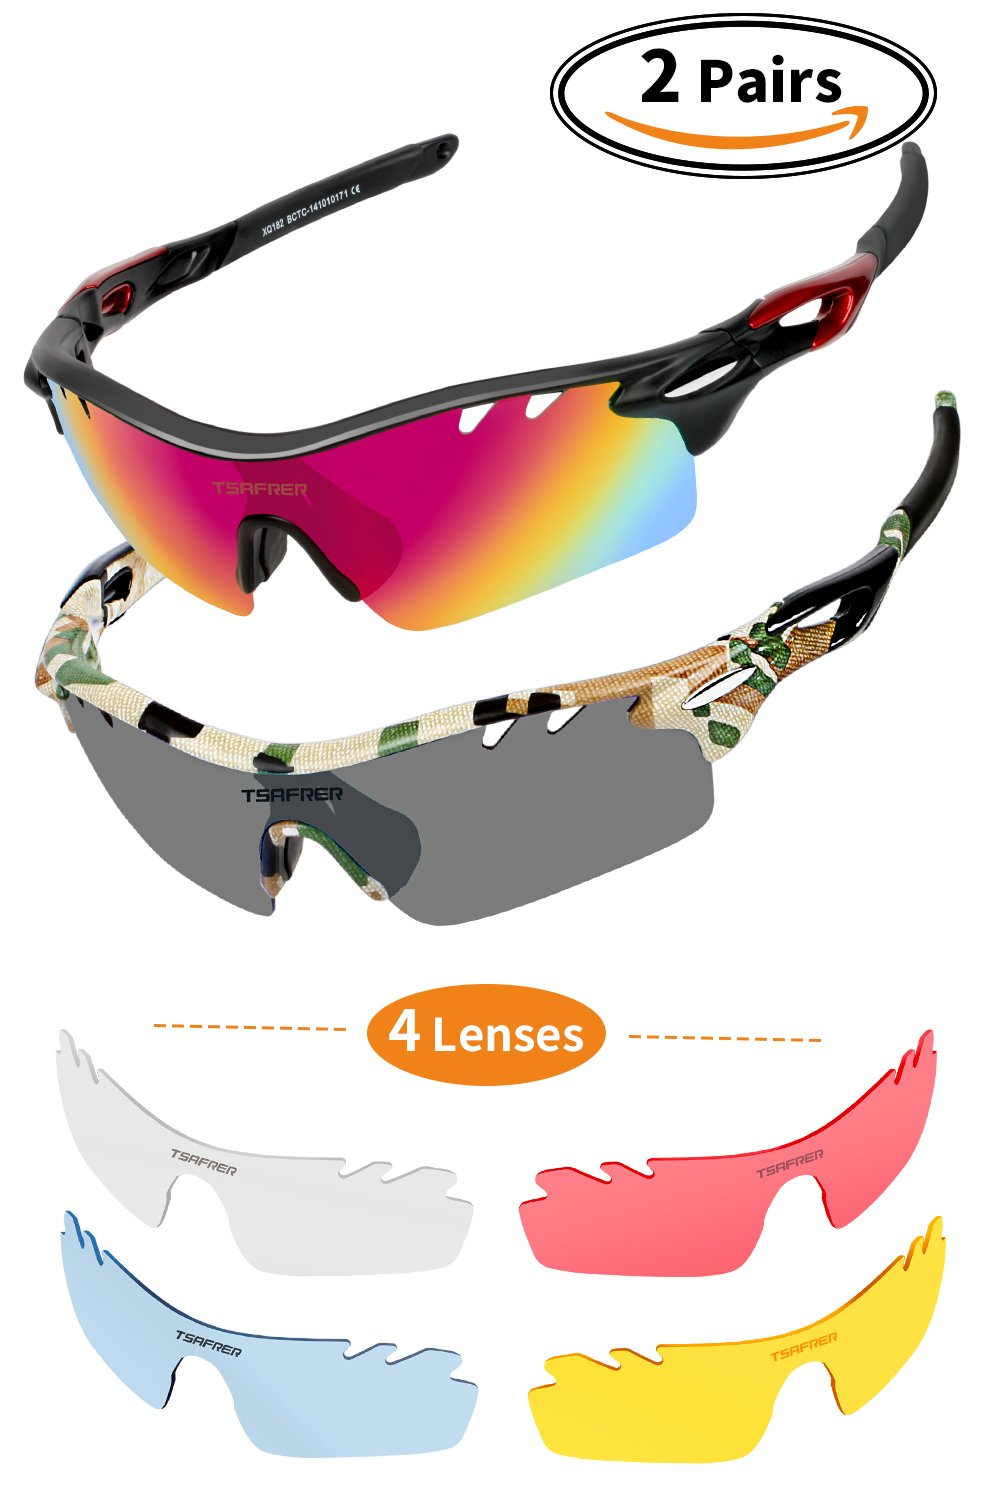 aea7a37c76b Cycling Sunglasses Polarized Sunglasses for man